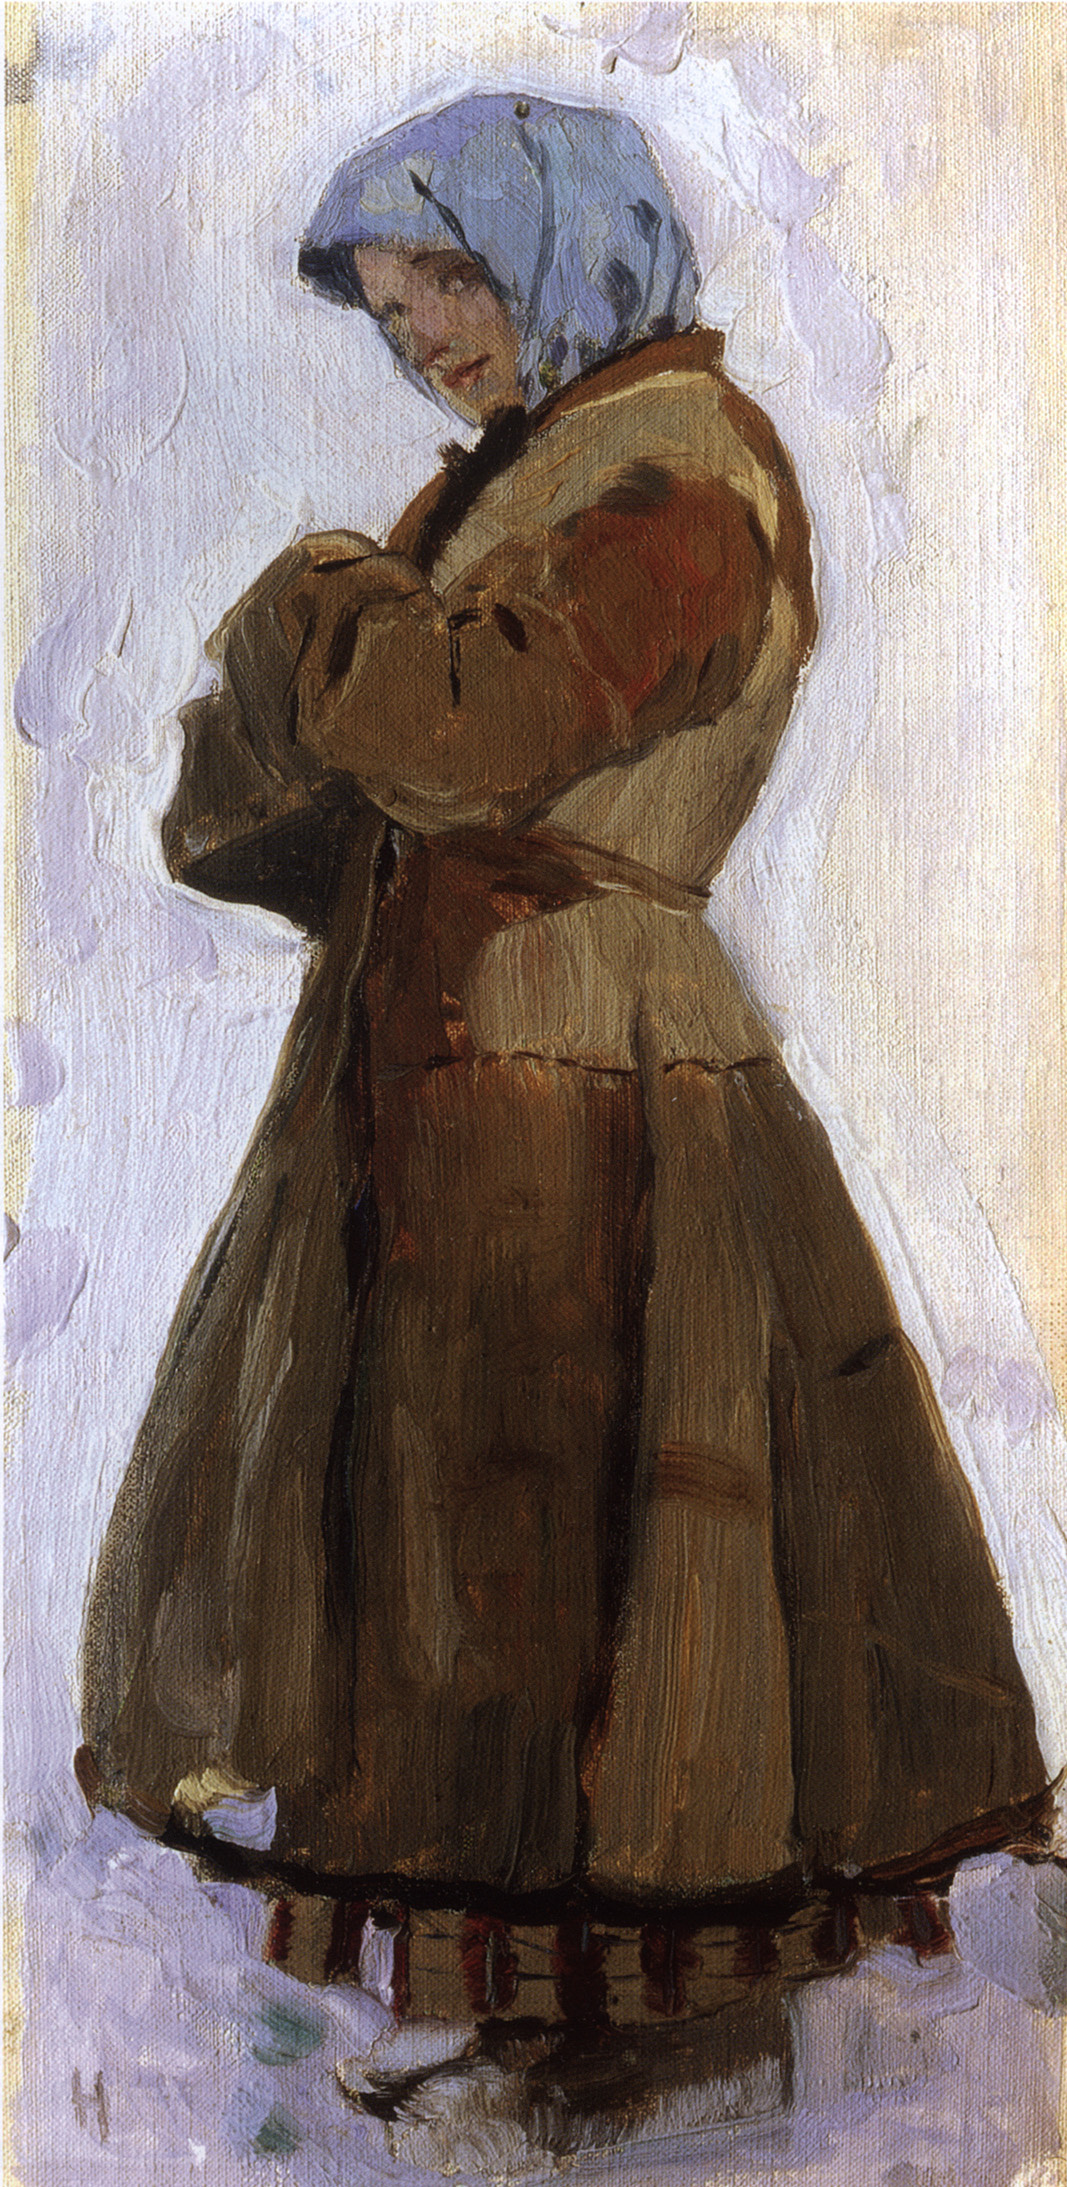 "Mikhail Vasilyevich Nesterov. The girl in the coat. Study for the painting ""Holy Russia"""